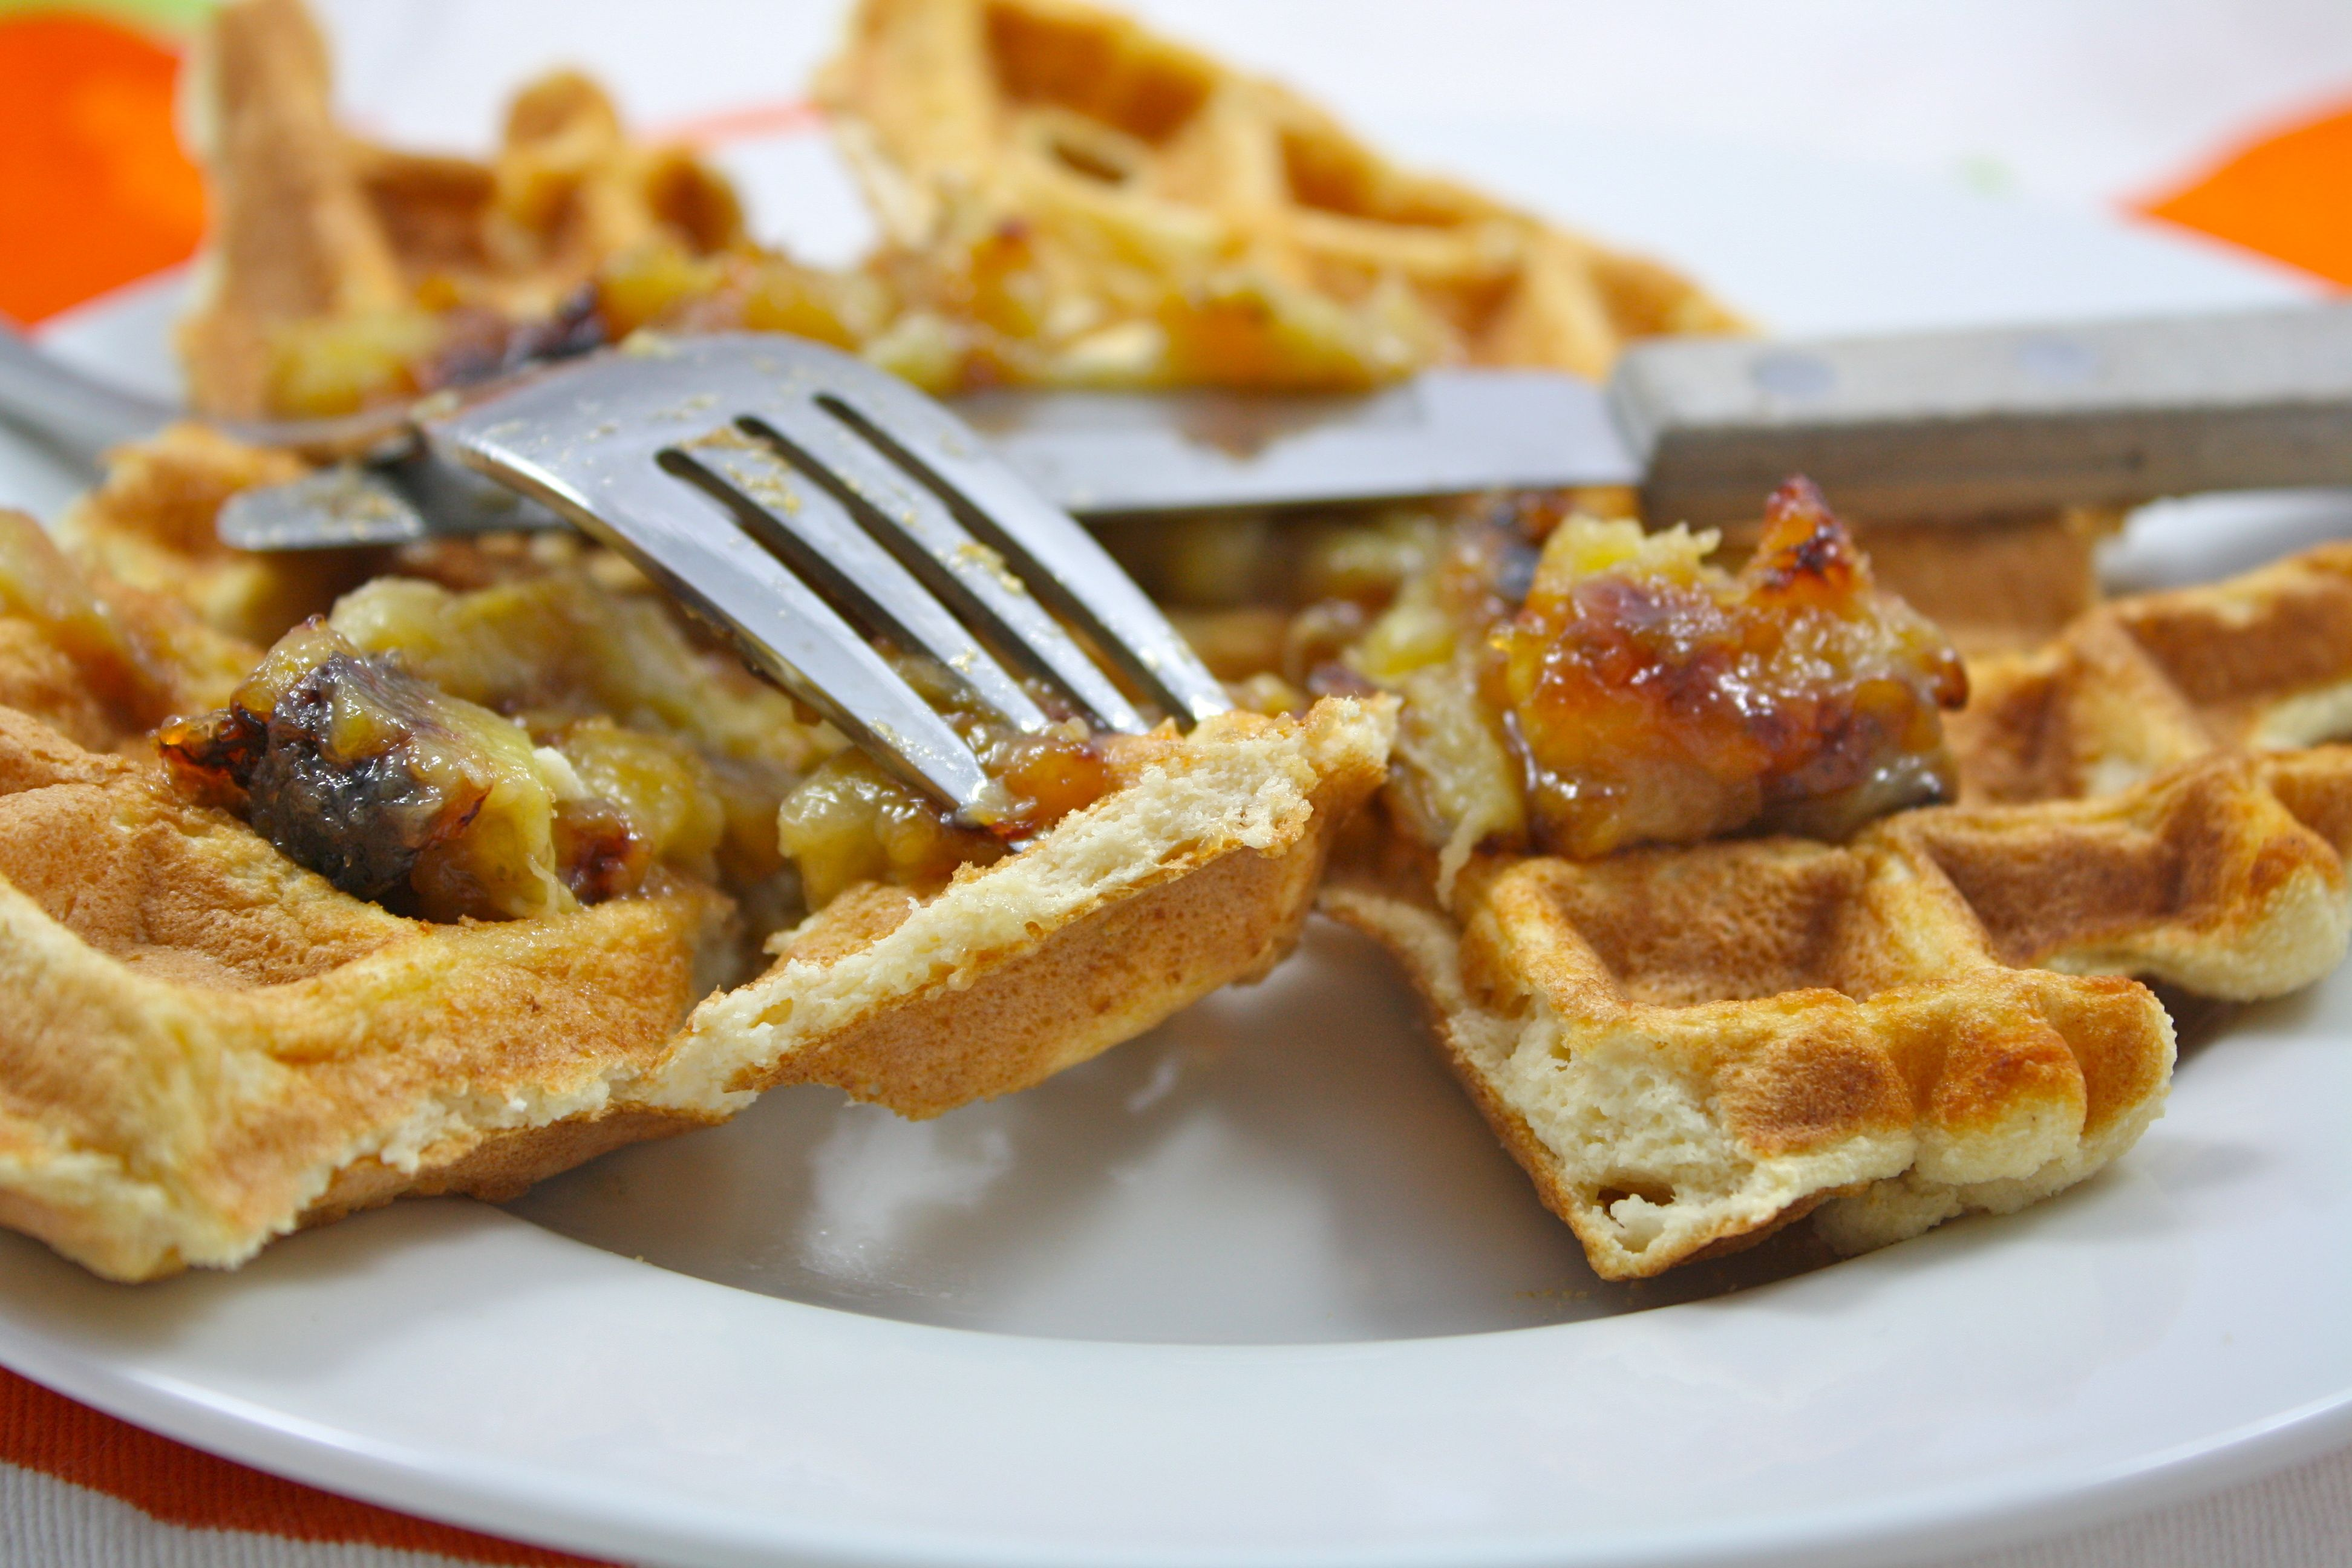 100 calorie waffle recipe. | skinny mode in 2018 | low carb, low